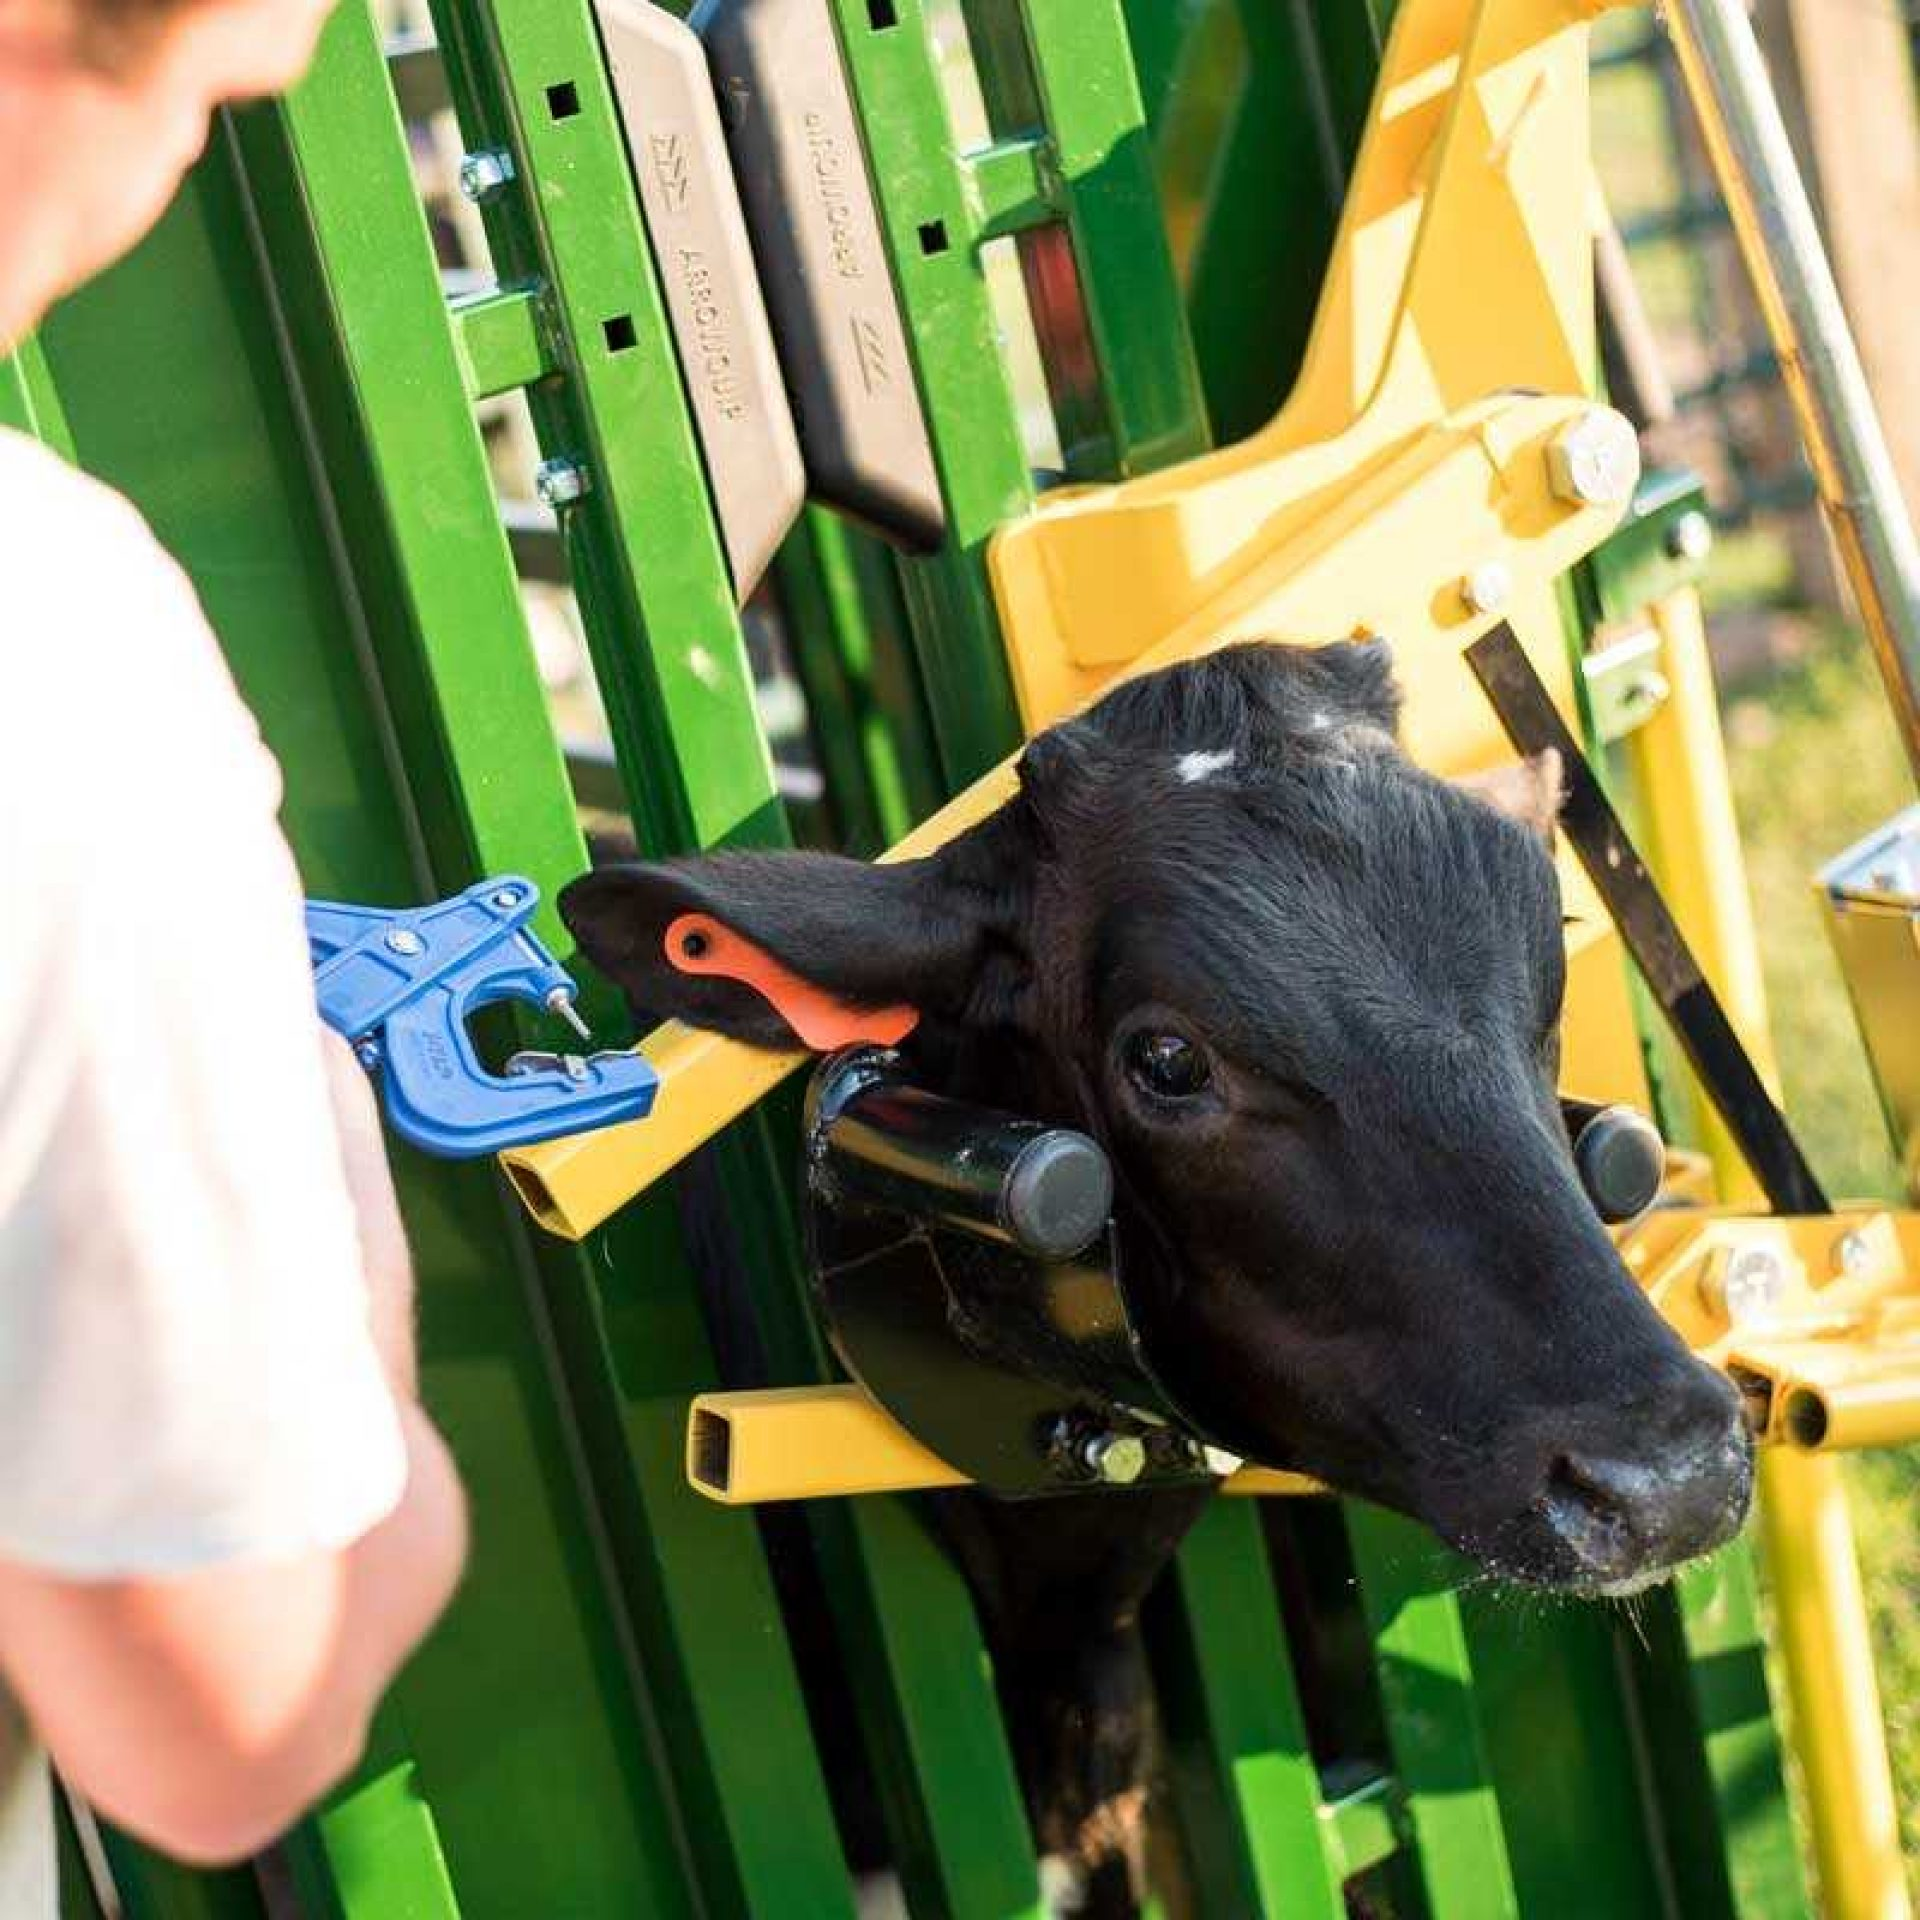 Black calf being ear tagged in Q-Catch Cattle Head Holder